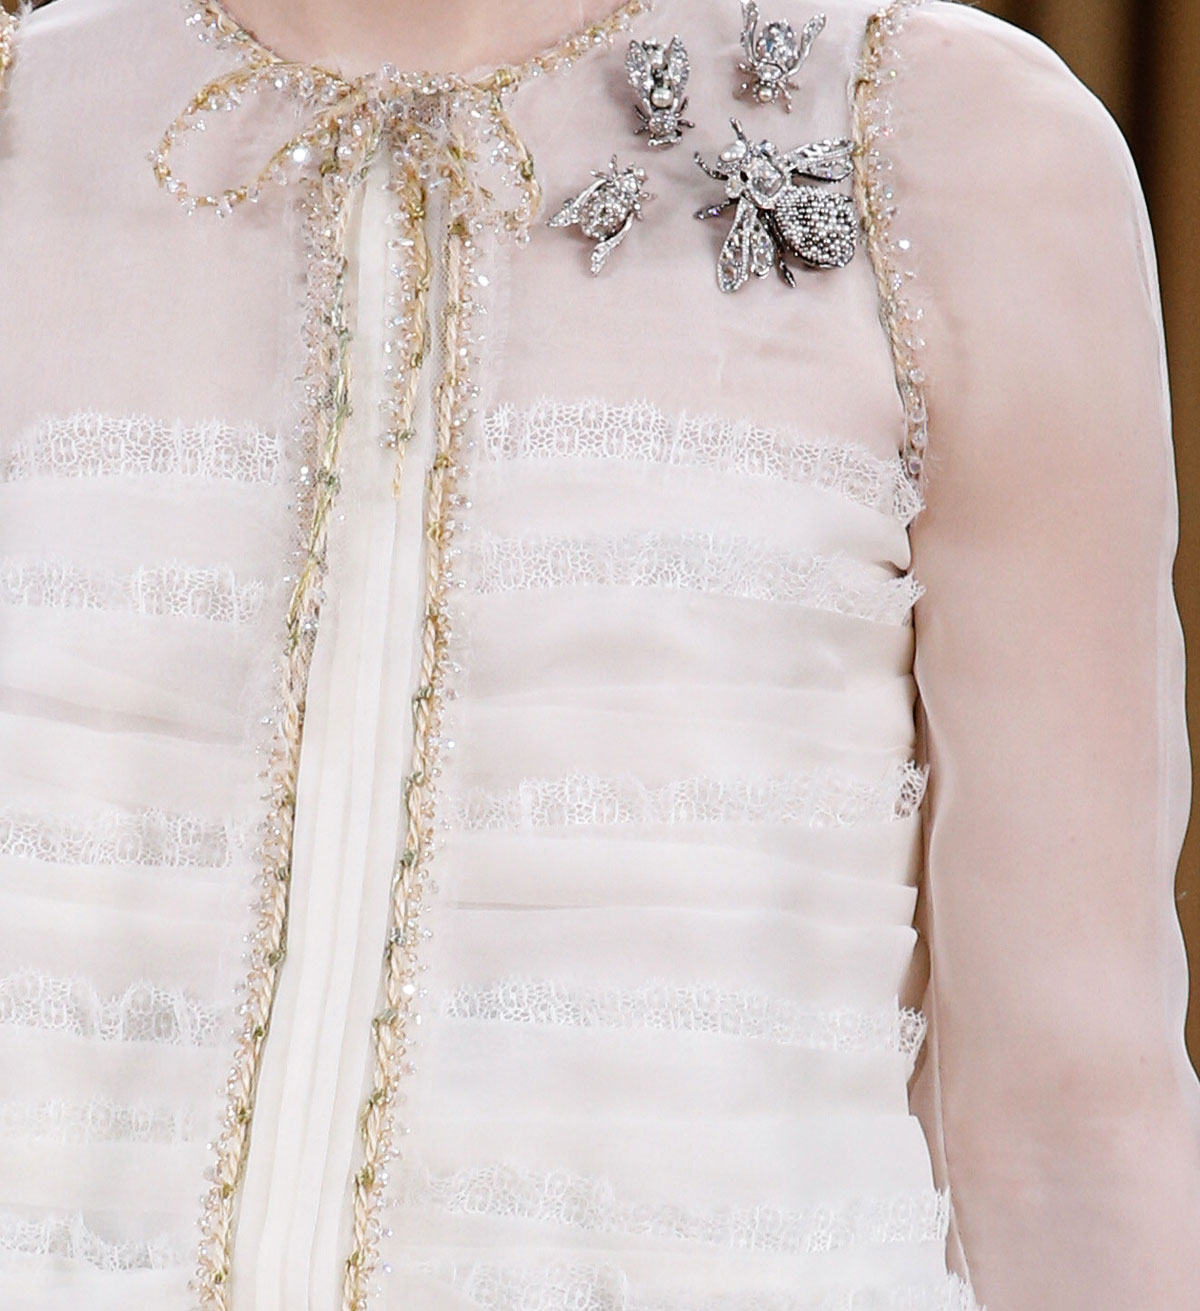 white blouse details Chanel Couture Spring 2016